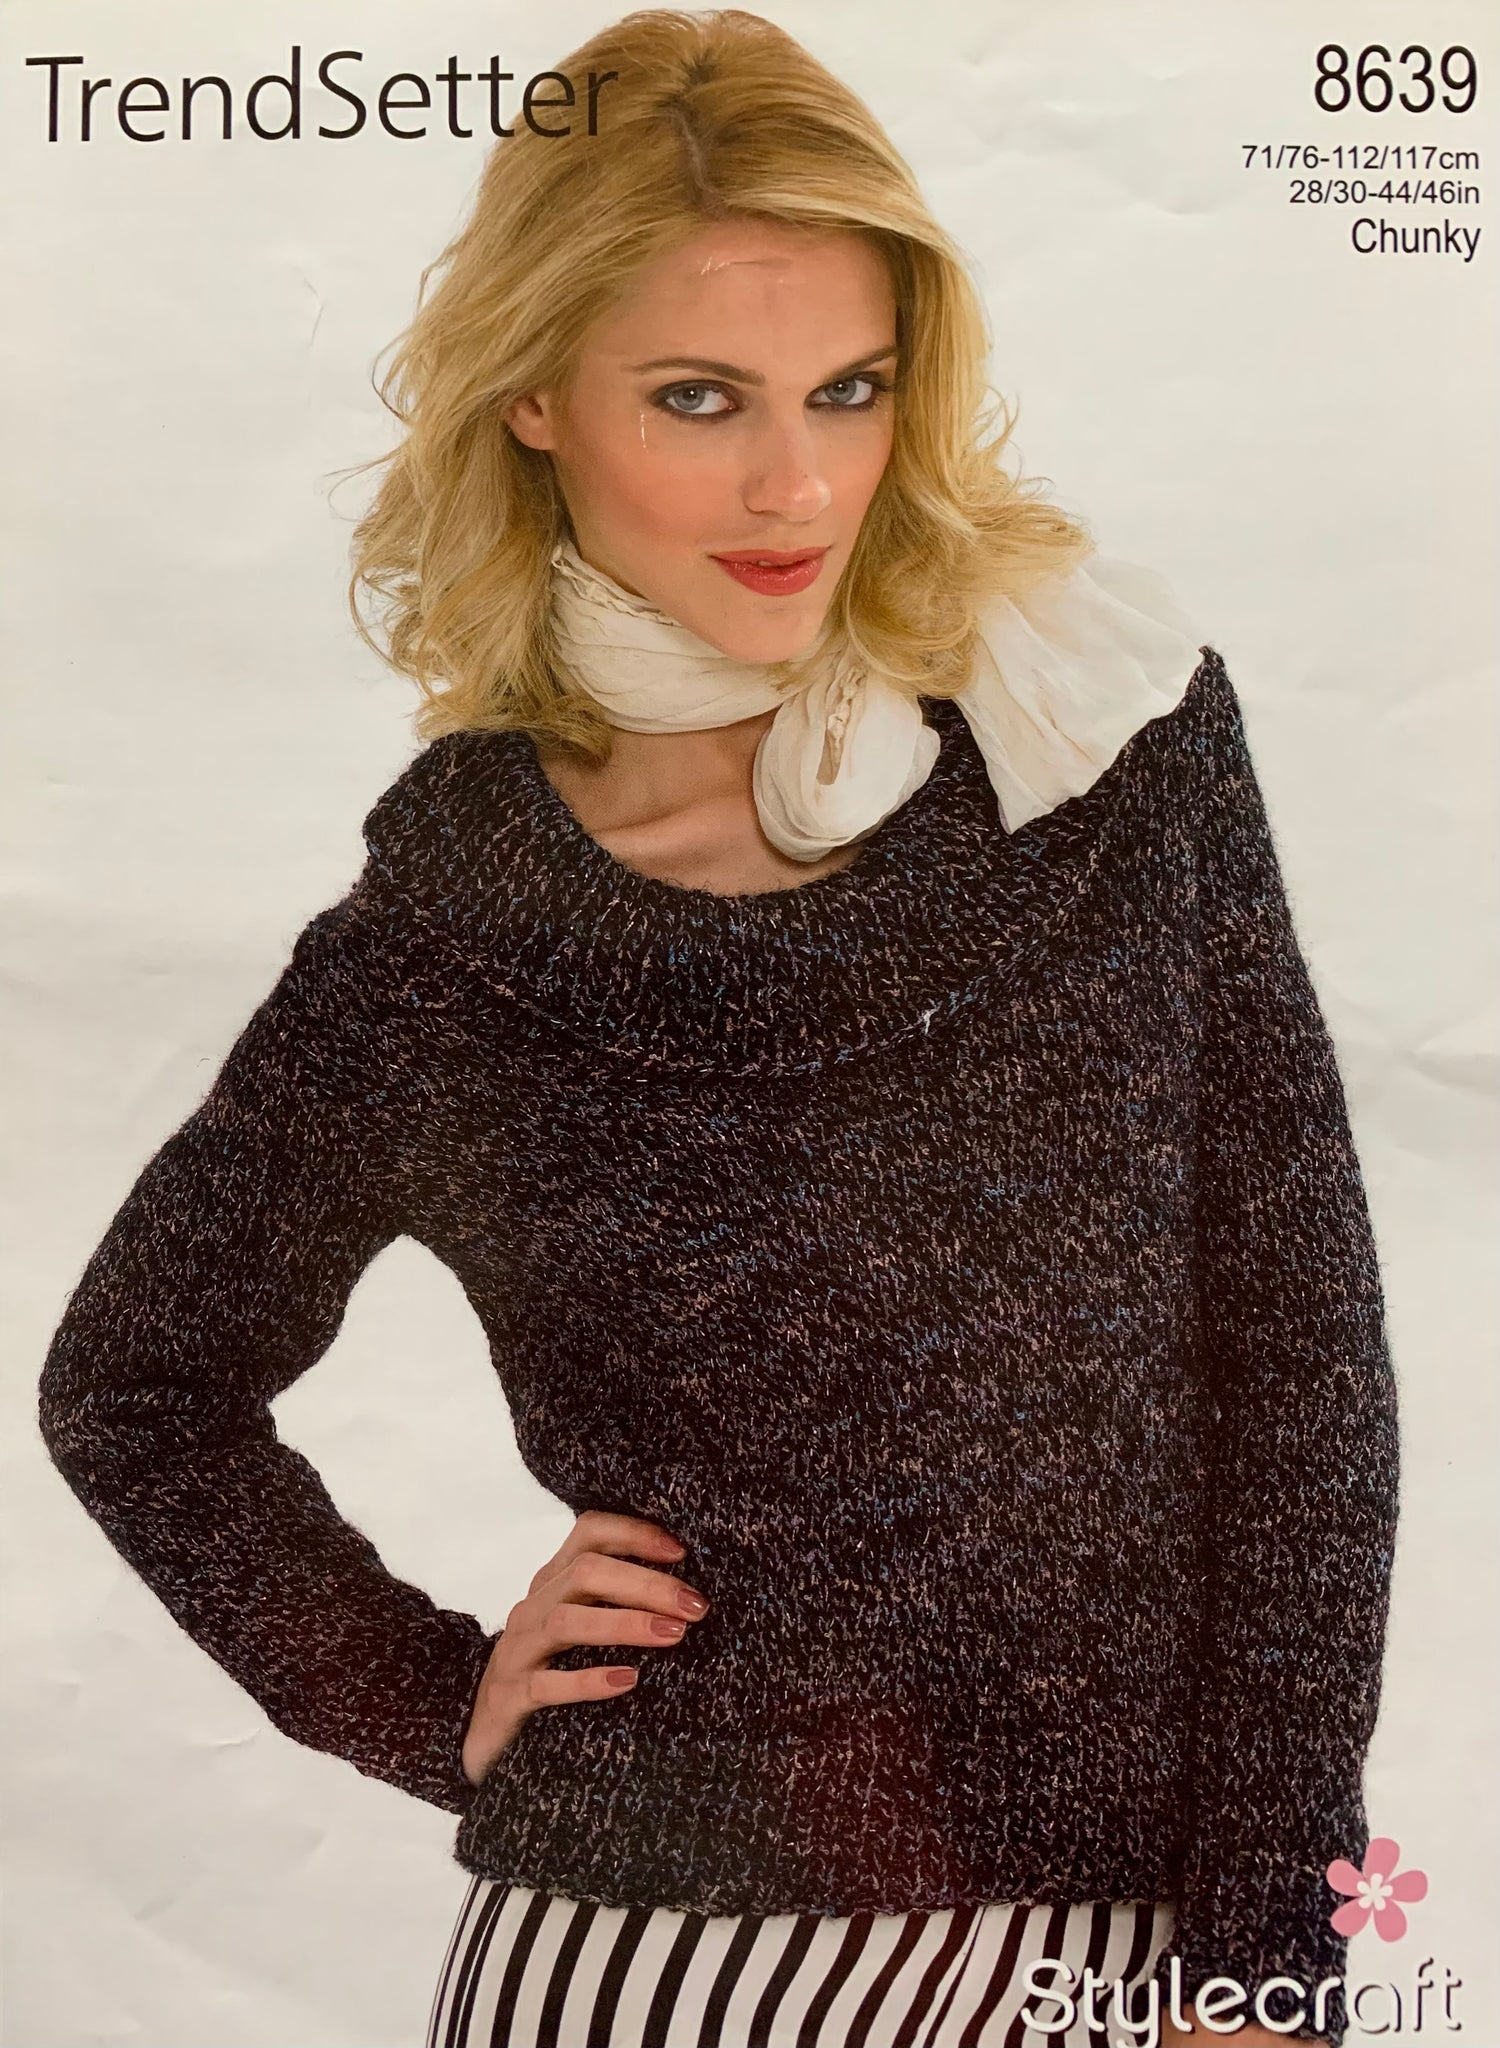 8639 Stylecraft Trendsetter chunky ladies sweater knitting pattern